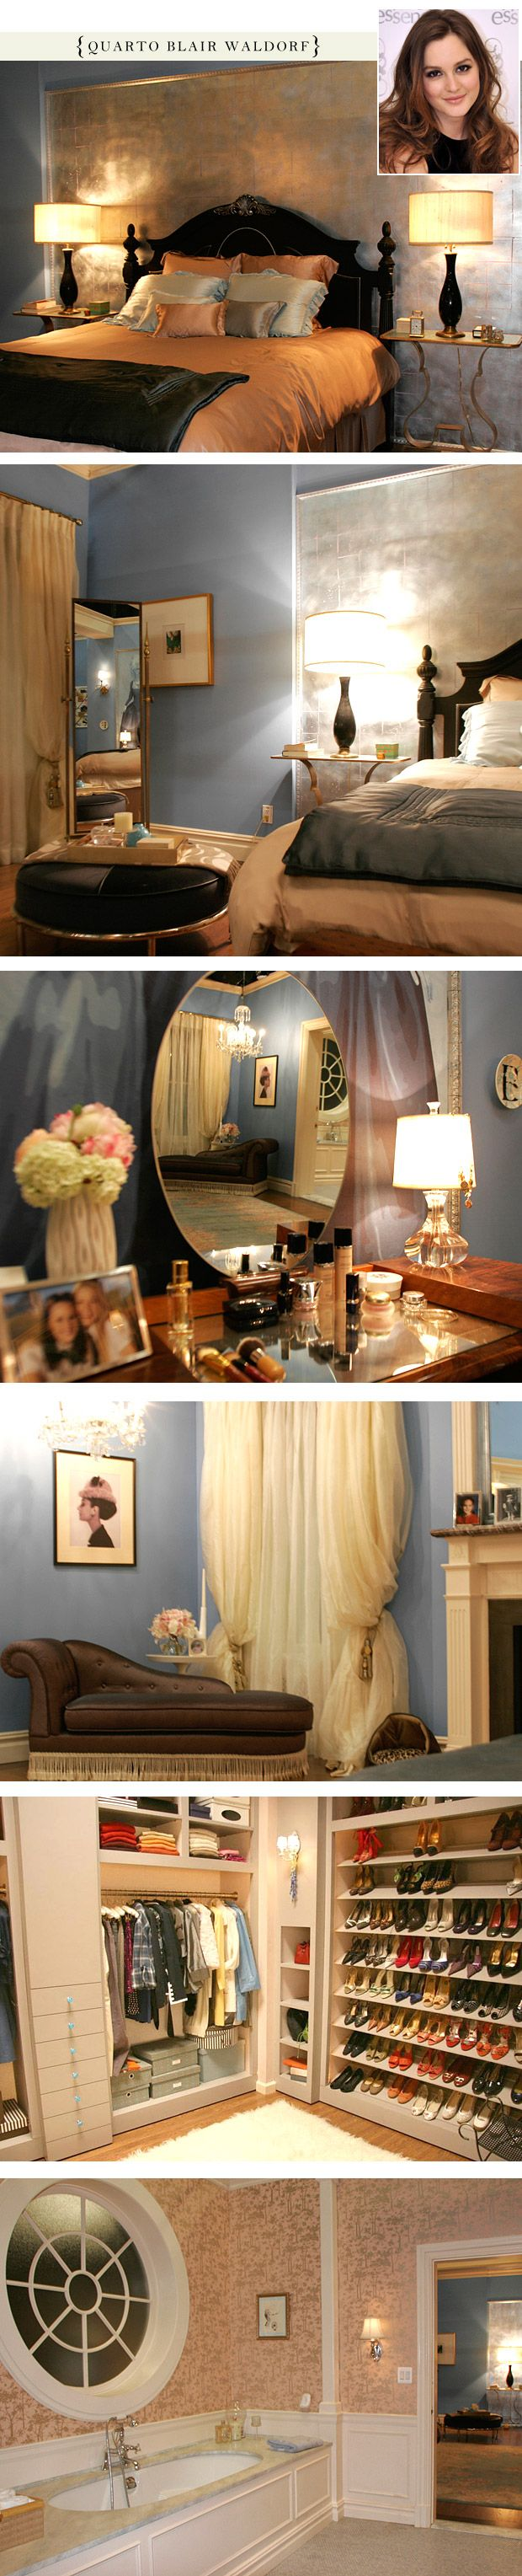 Blair Waldorf's Bedroom on Gossip Girl ♡